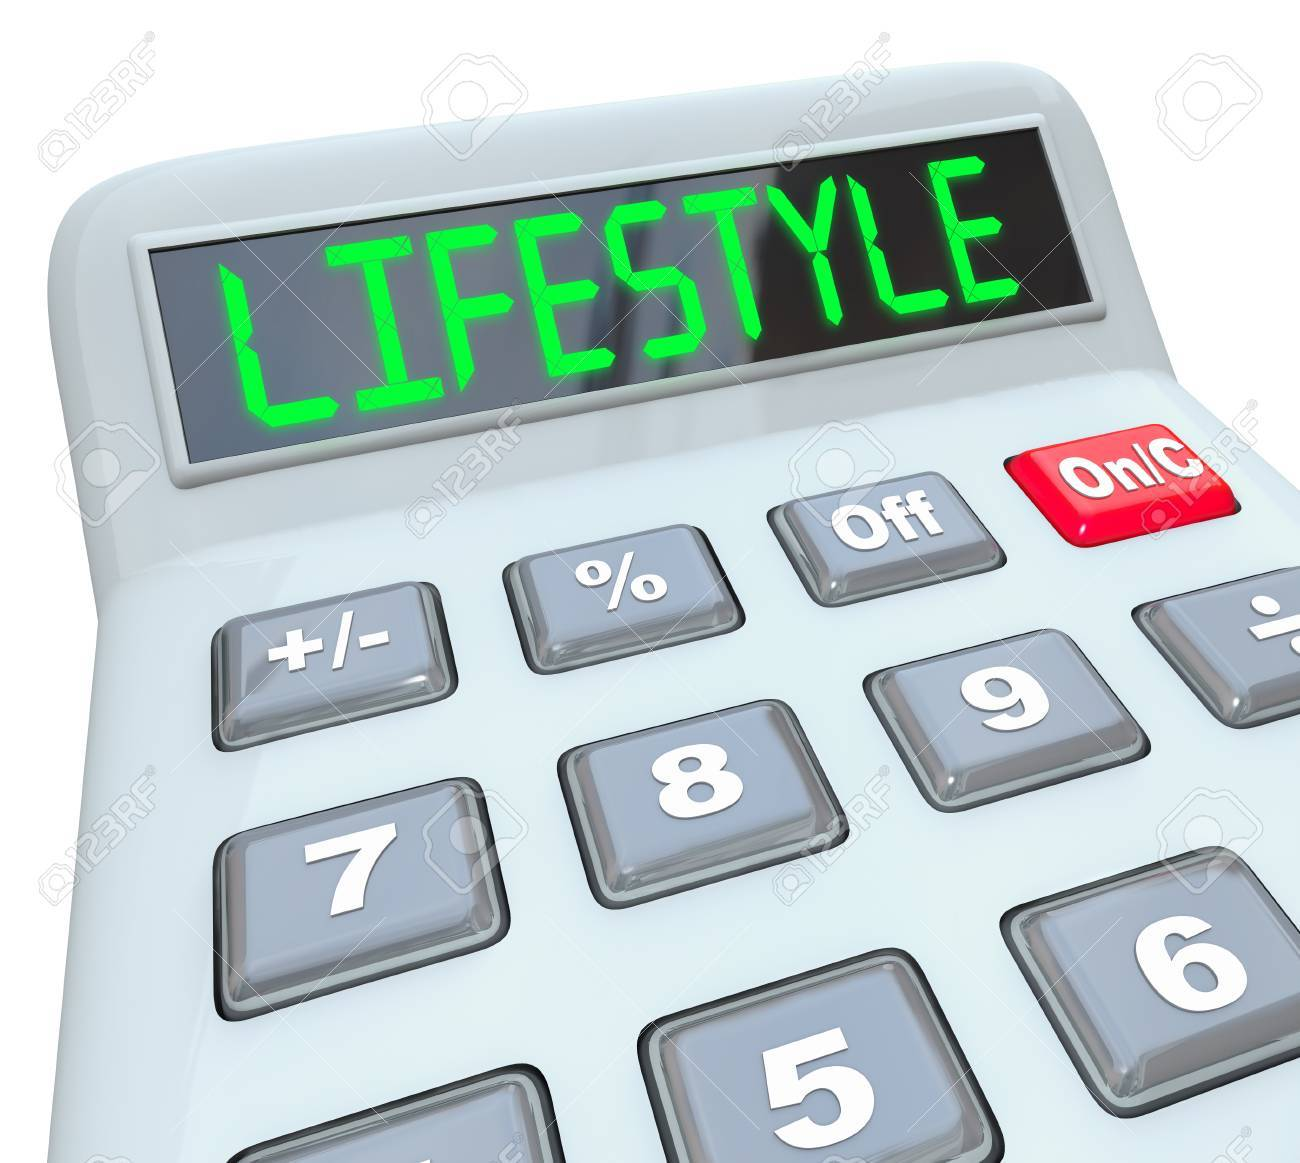 lifestyle word on calculator display adding expenses and budget